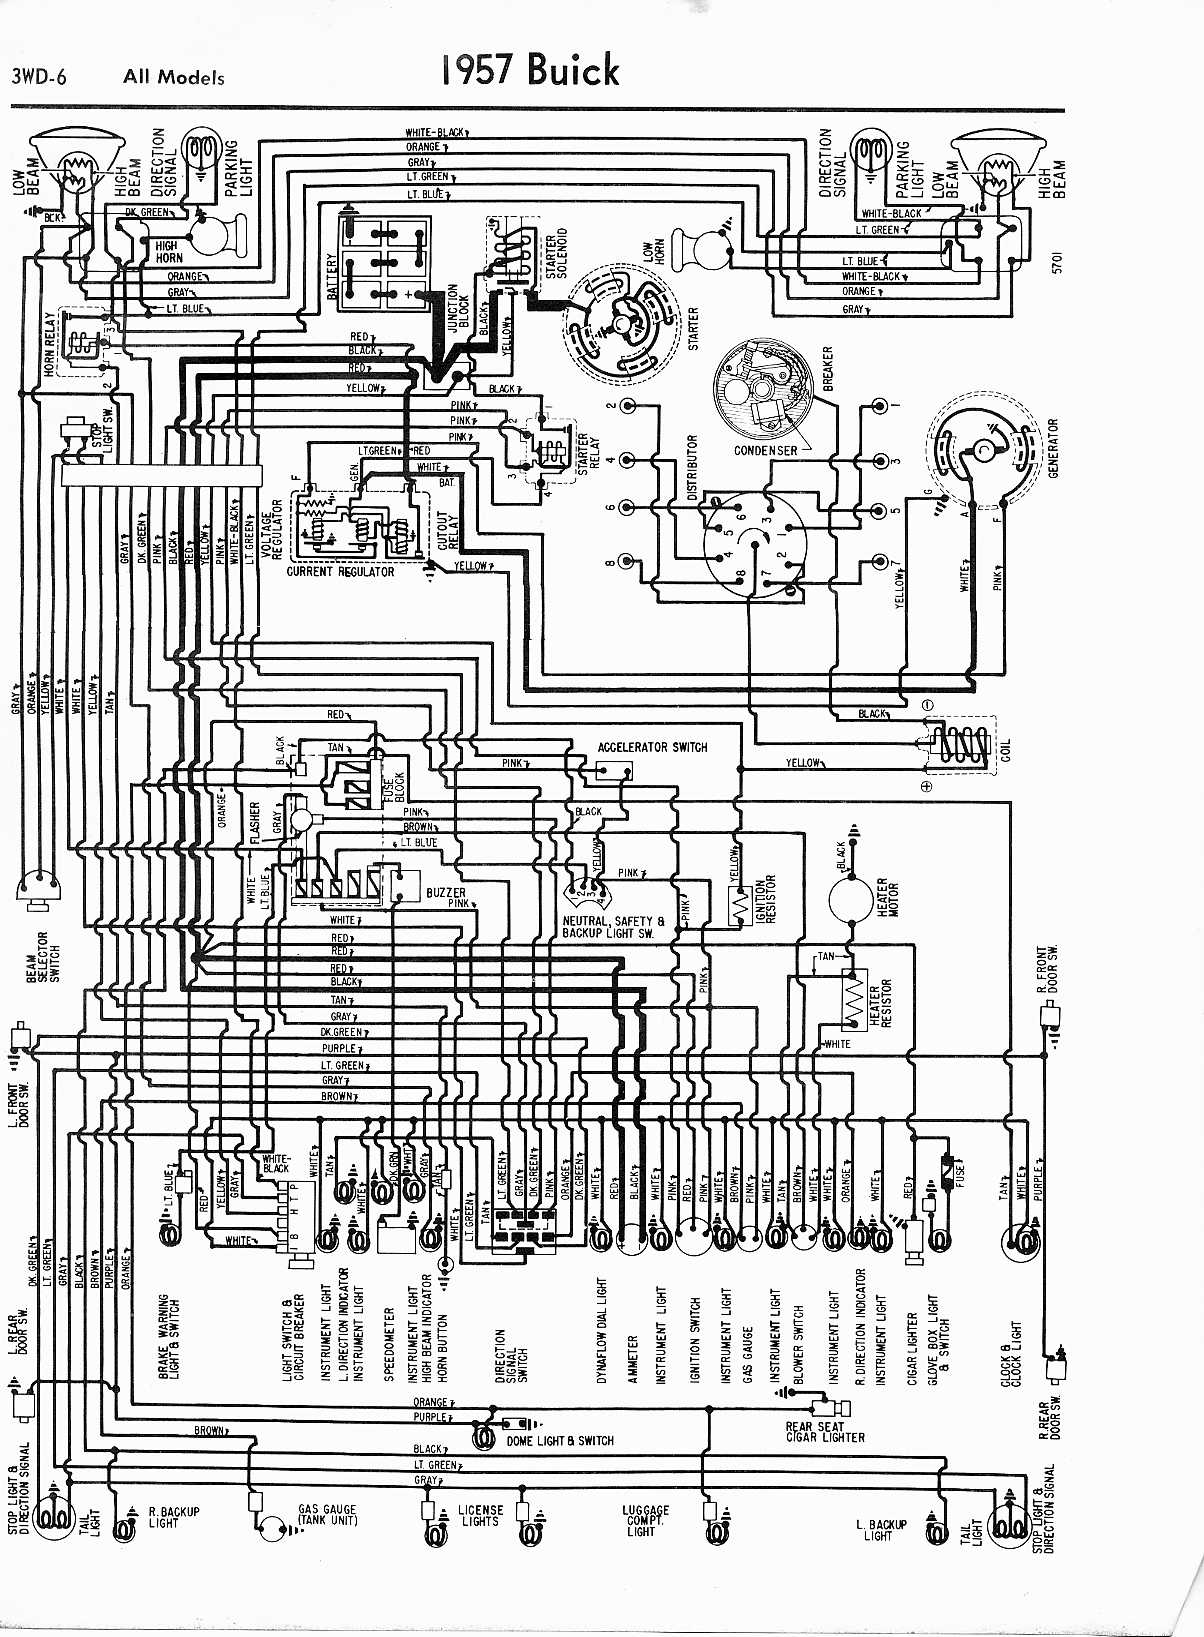 Buick riviera wiring diagram lesabre fuse pictures wire center buick wiring diagrams 1957 1965 rh oldcarmanualproject com 2004 buick lesabre paint colors 2005 buick lesabre wiring diagram fandeluxe Gallery